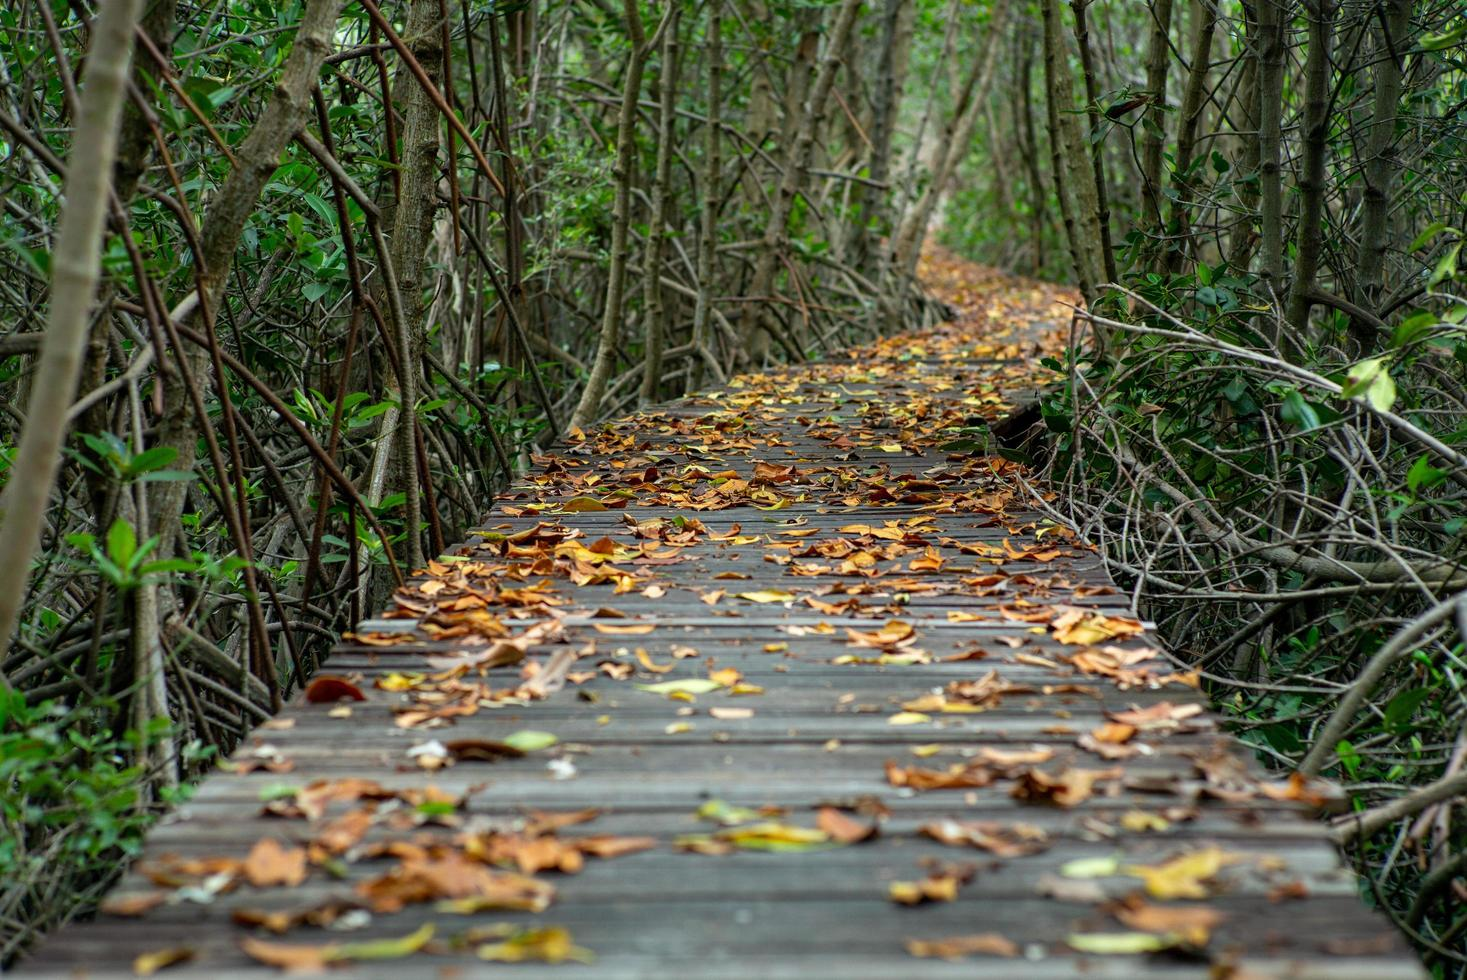 Selective focus picture of many dried leaves on the wooden walkway in the mangrove forest photo